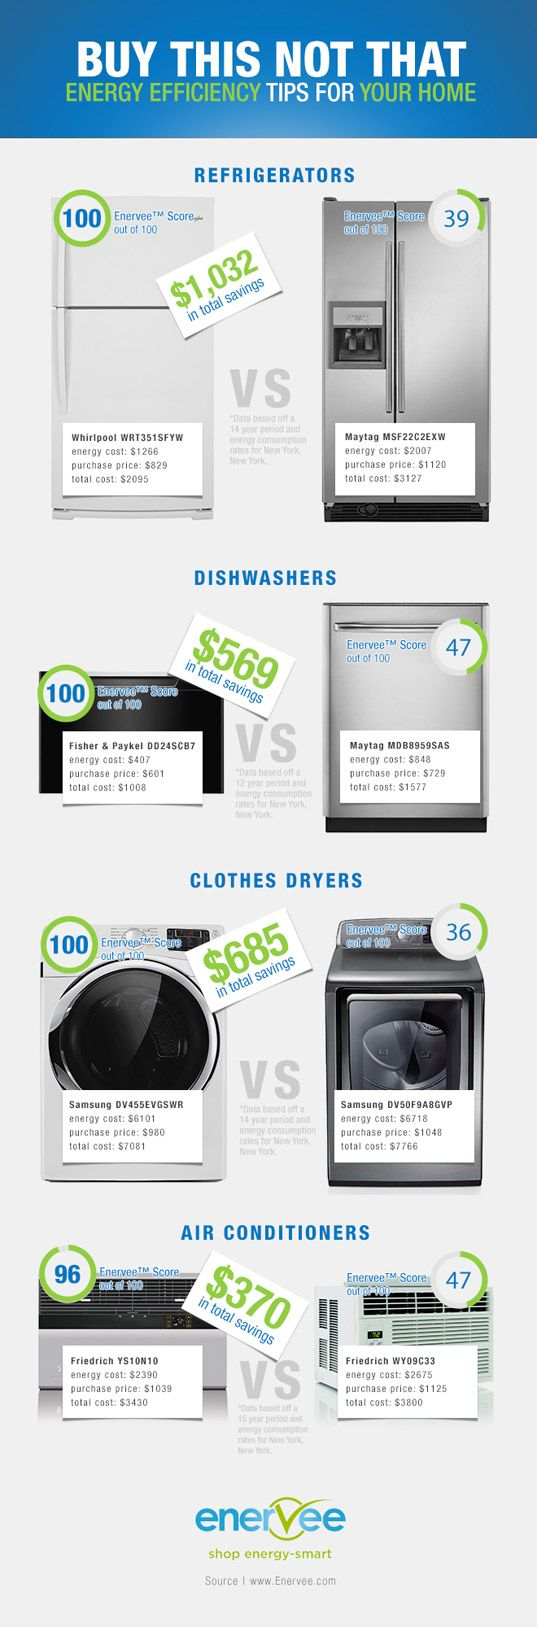 Uncategorized Sustainable Kitchen Appliances clothes dryer energy efficiency and design on pinterest enervee home appliances green sustainable design